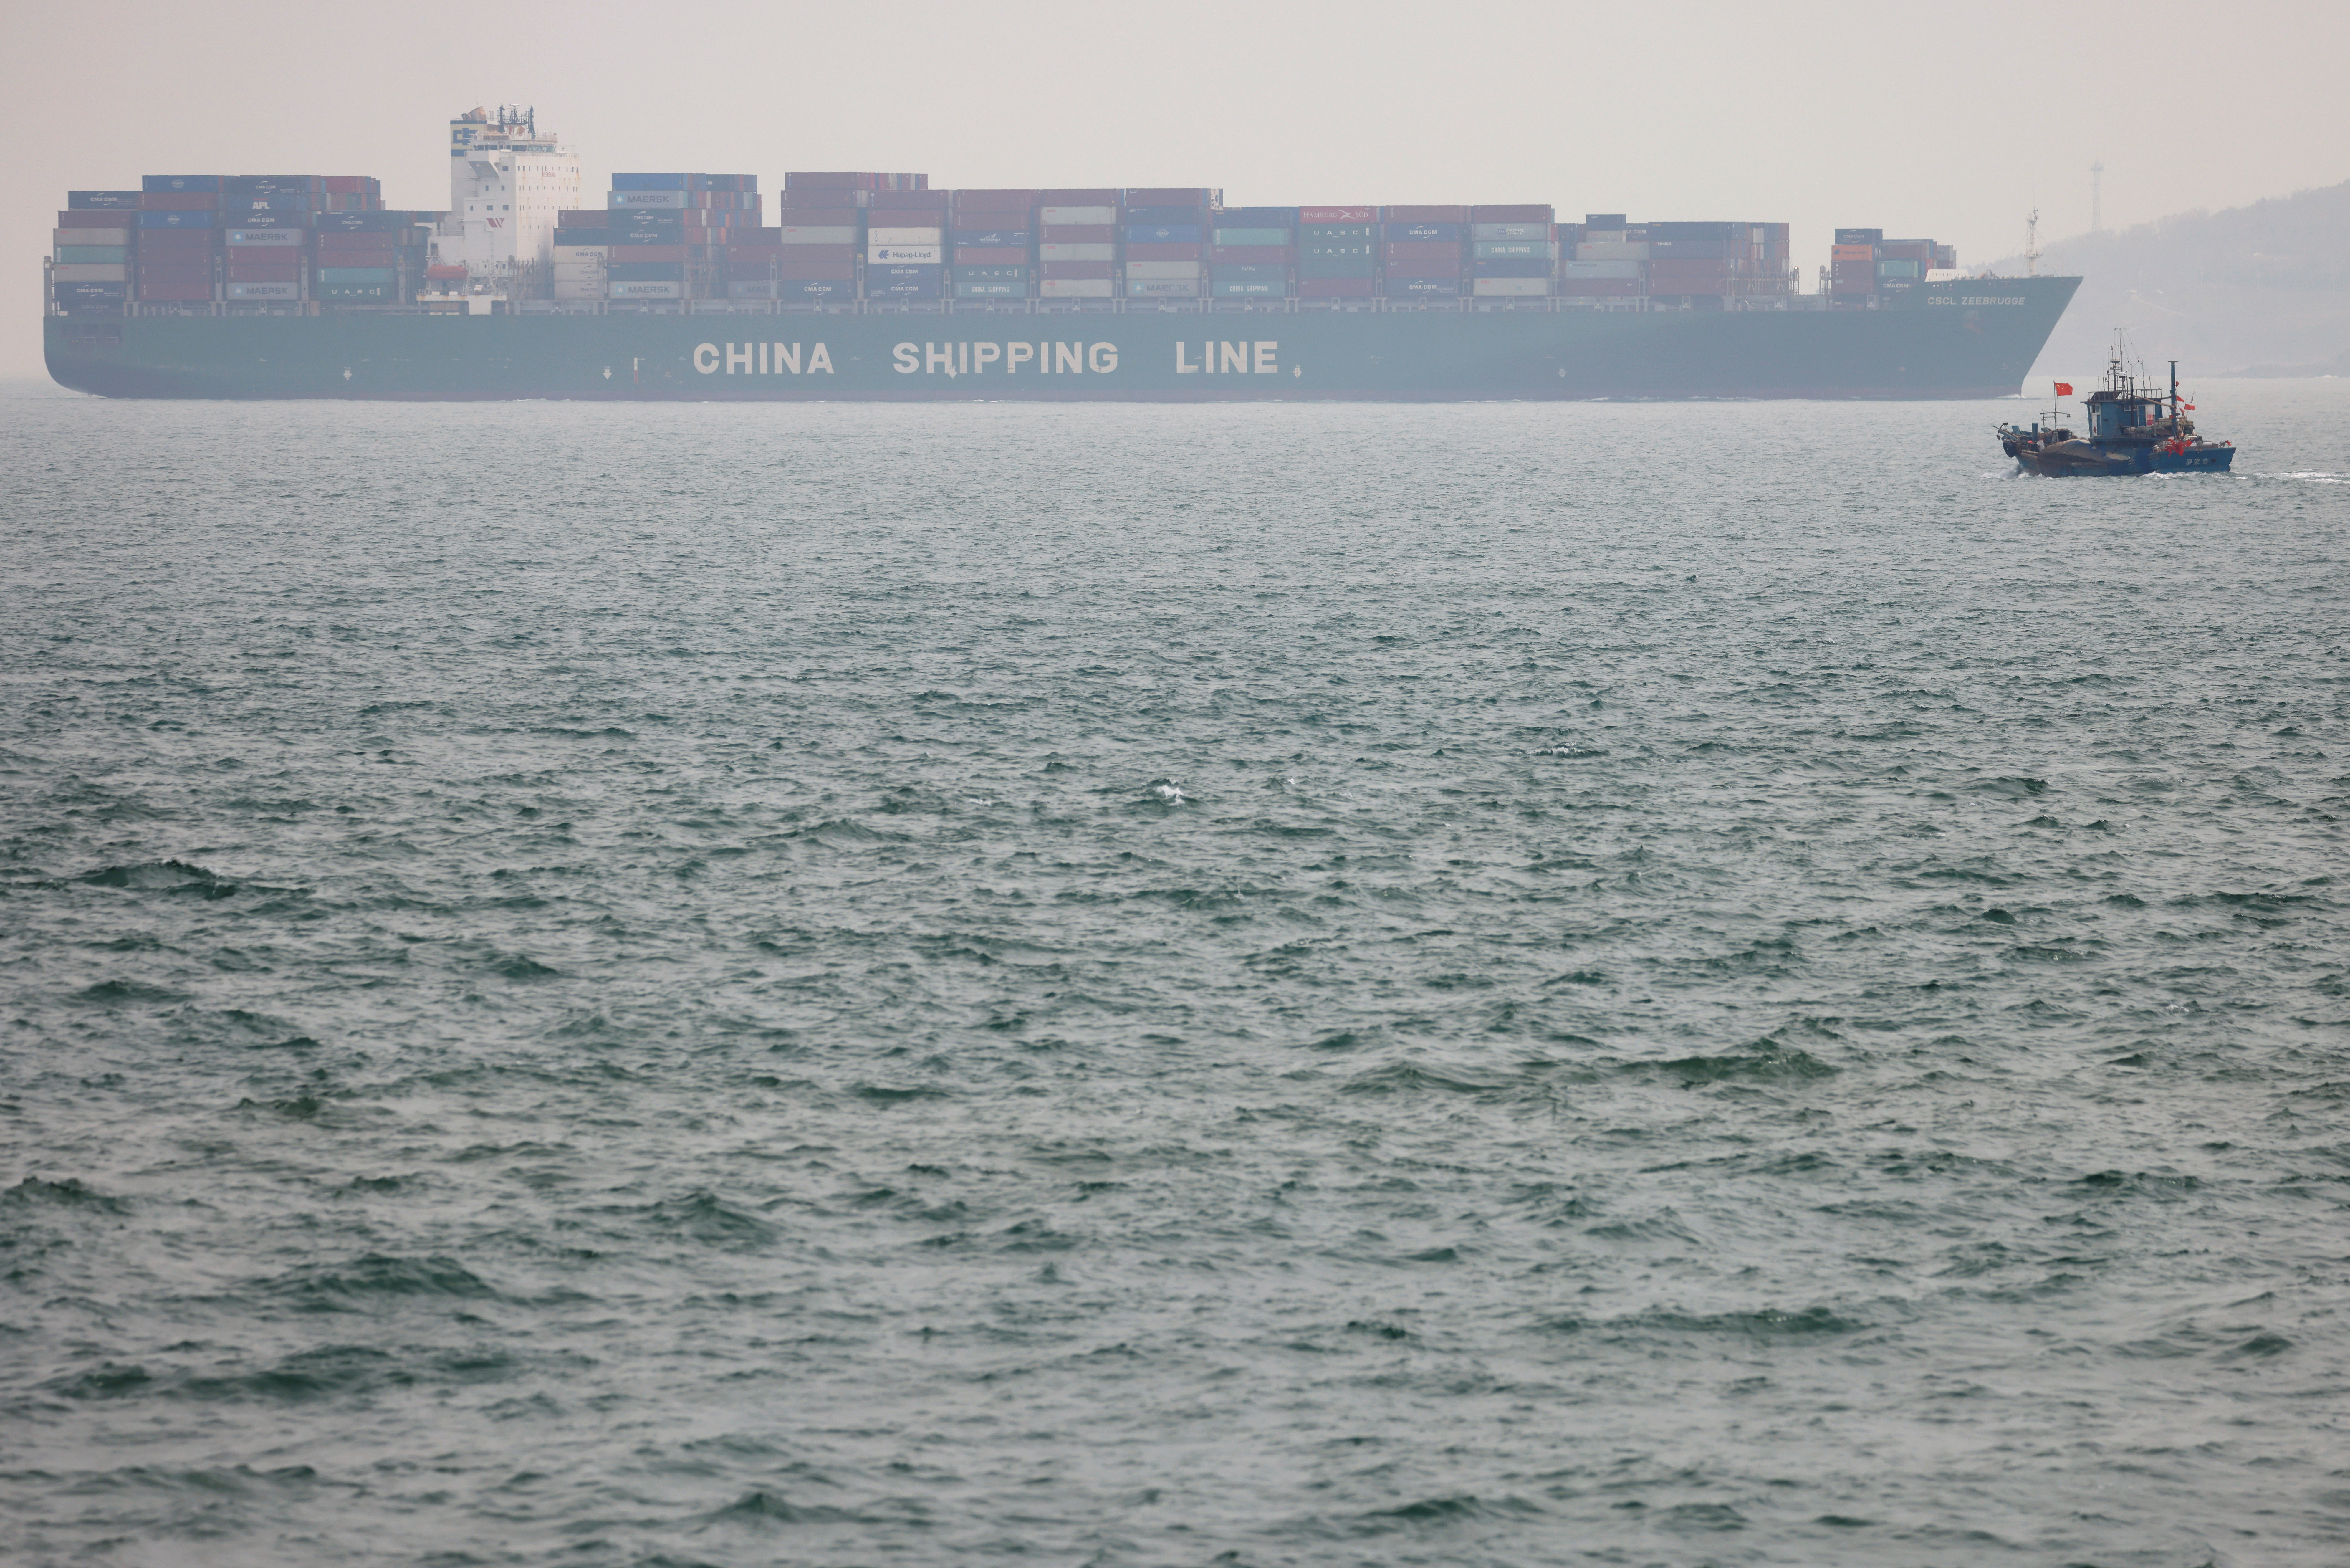 A fishing boat is seen near a China Shipping Container Lines (CSCL) vessel off the coast of Qingdao, Shandong province, China, following an oil spill in the Yellow Sea caused by a collision between tanker A Symphony and bulk vessel Sea Justice off Qingdao port,April 29, 2021. REUTERS/Carlos Garcia Rawlins